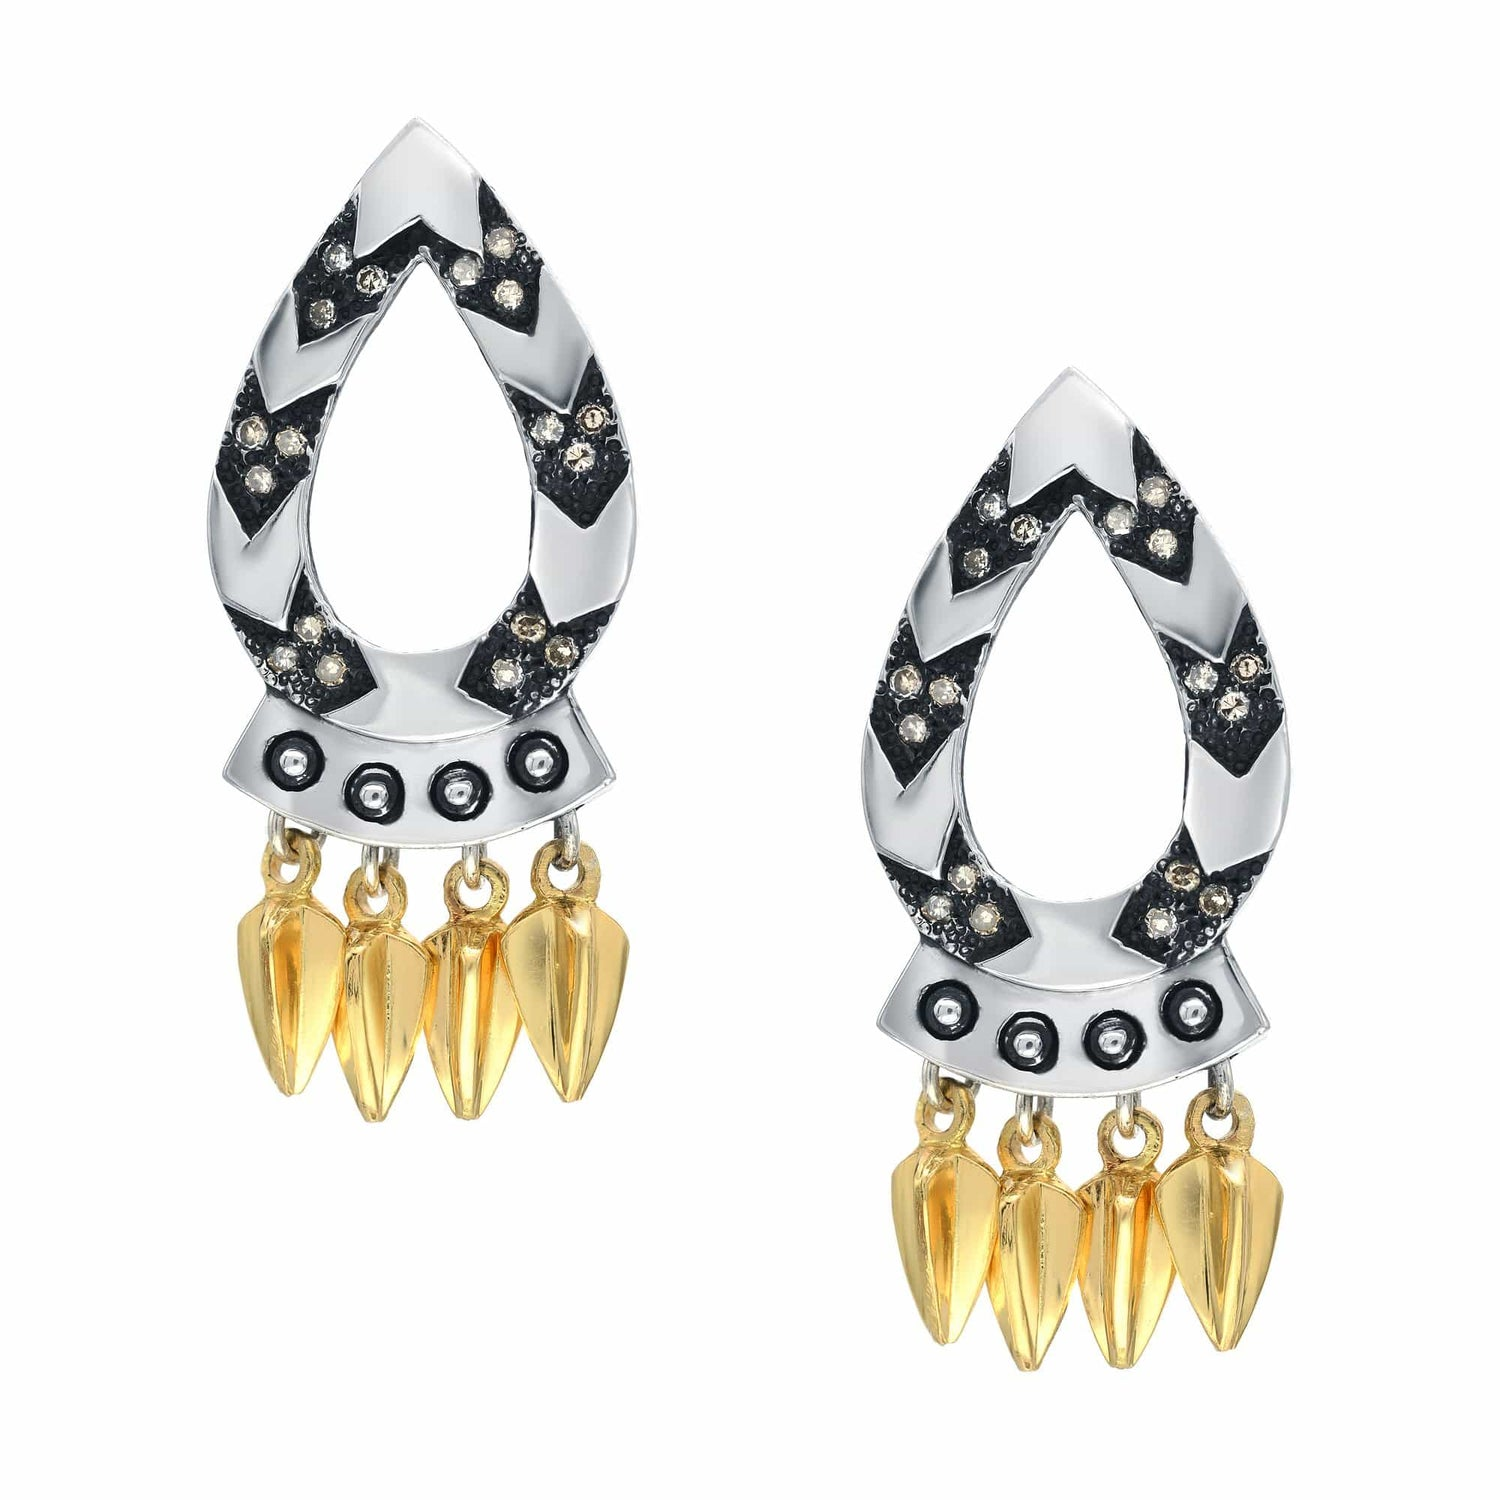 Diamond Chevron Gold and Silver Spear Earrings - Curated Los Angeles